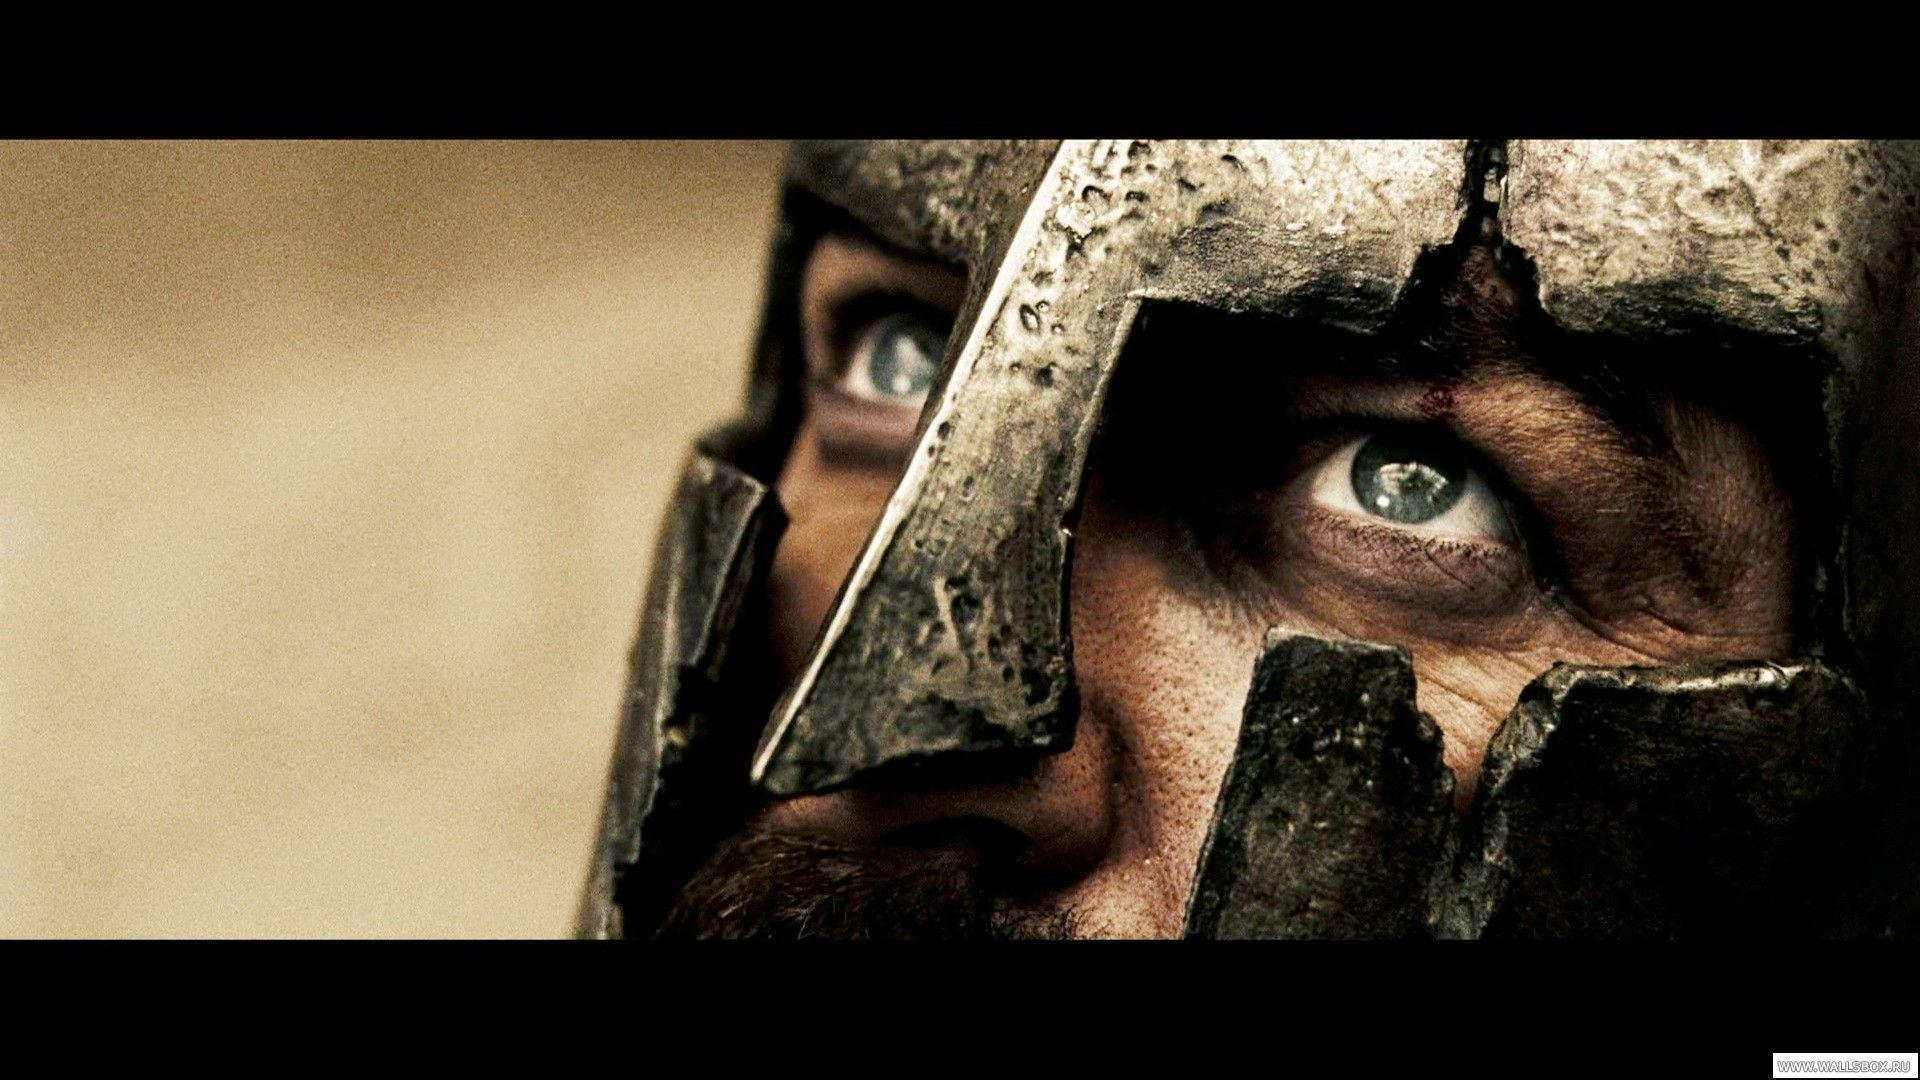 300 spartans wallpaper wallpapers - photo #27